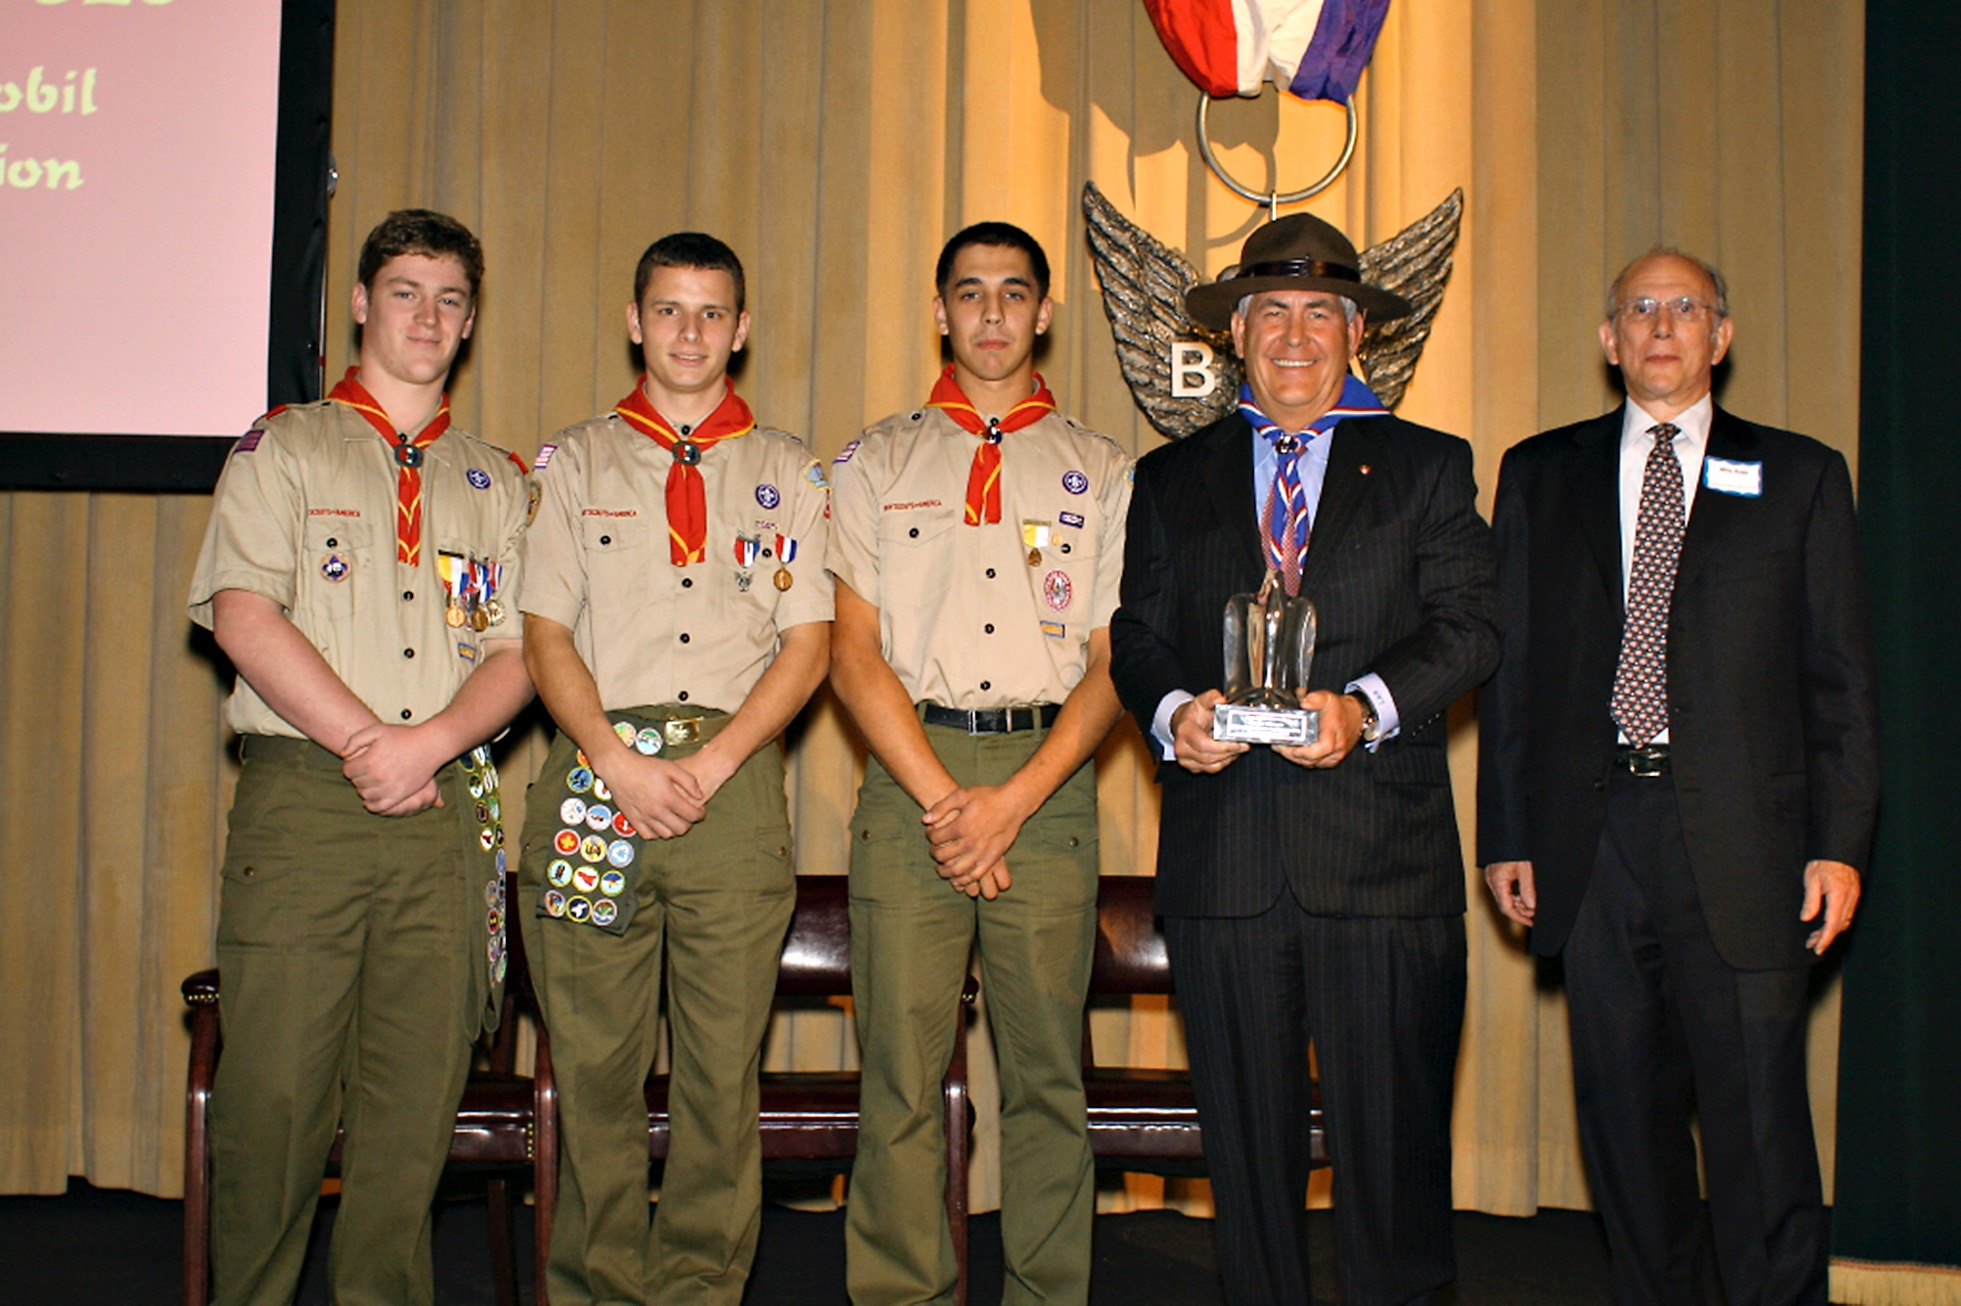 Former ExxonMobil Chairman and CEO RexTillerson being inducted into the BSA Eagle Scout Hall of Fame in 2009